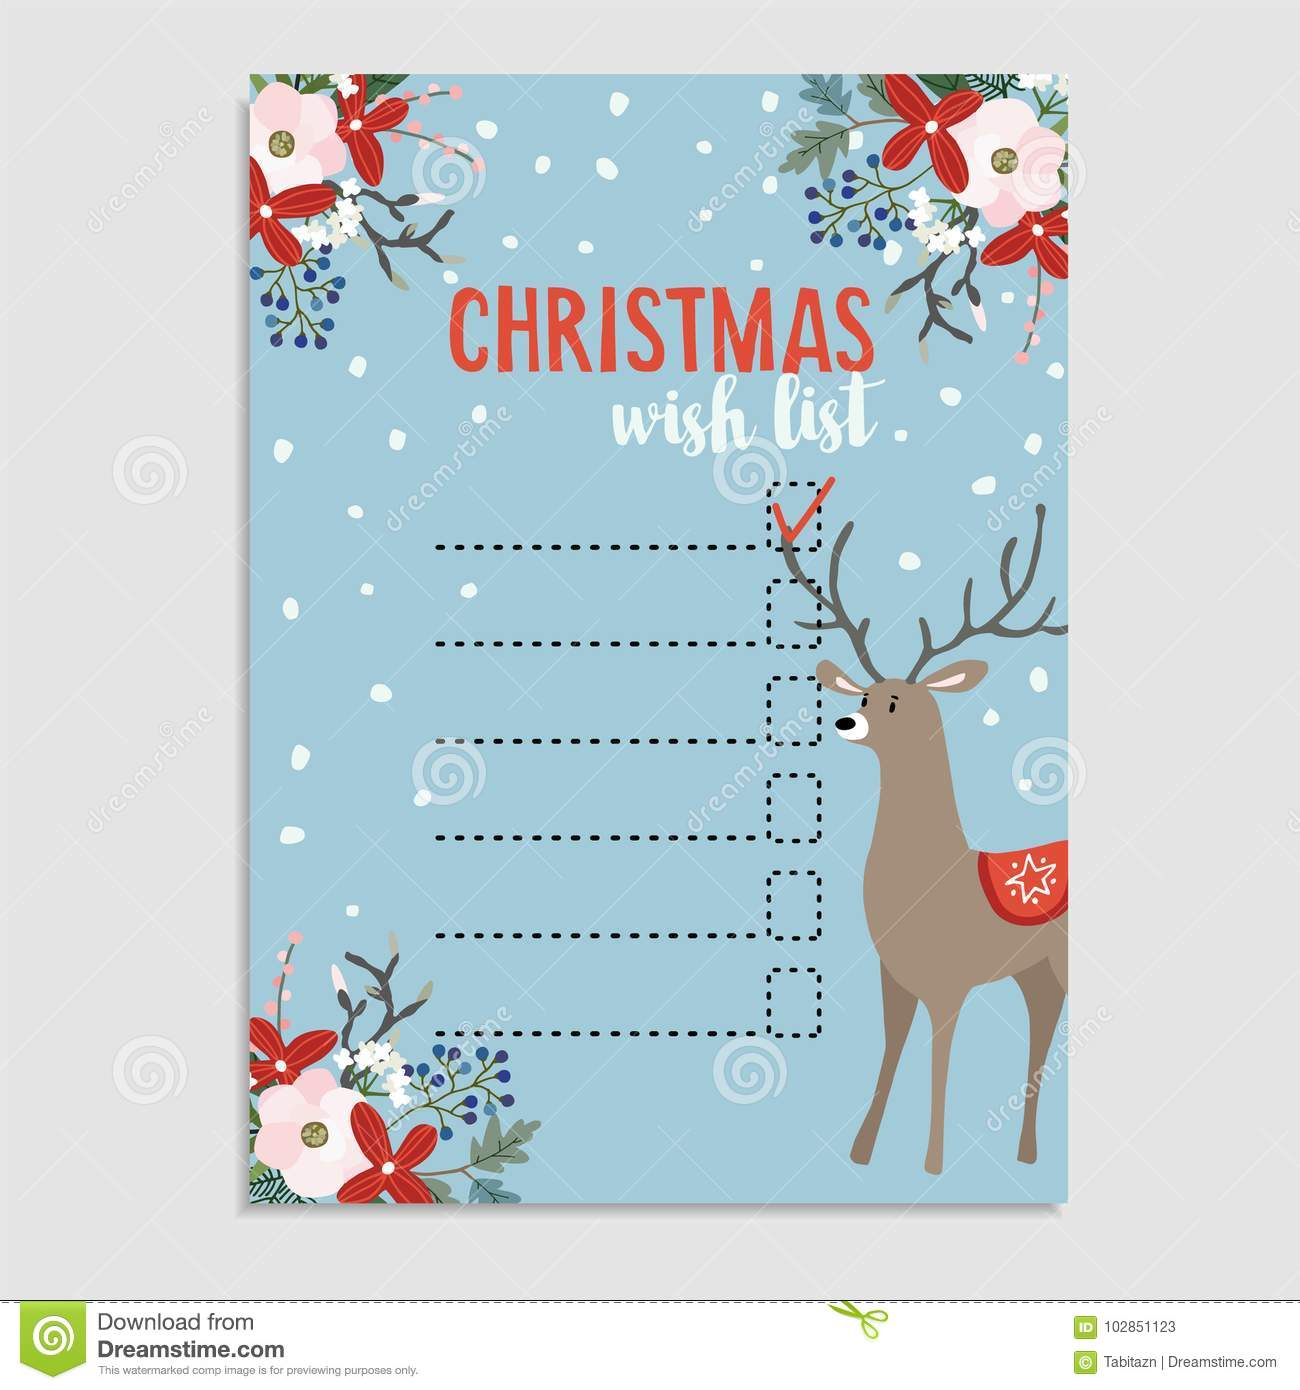 Cute Christmas Wish List With Deer Winter Floral Decoration And